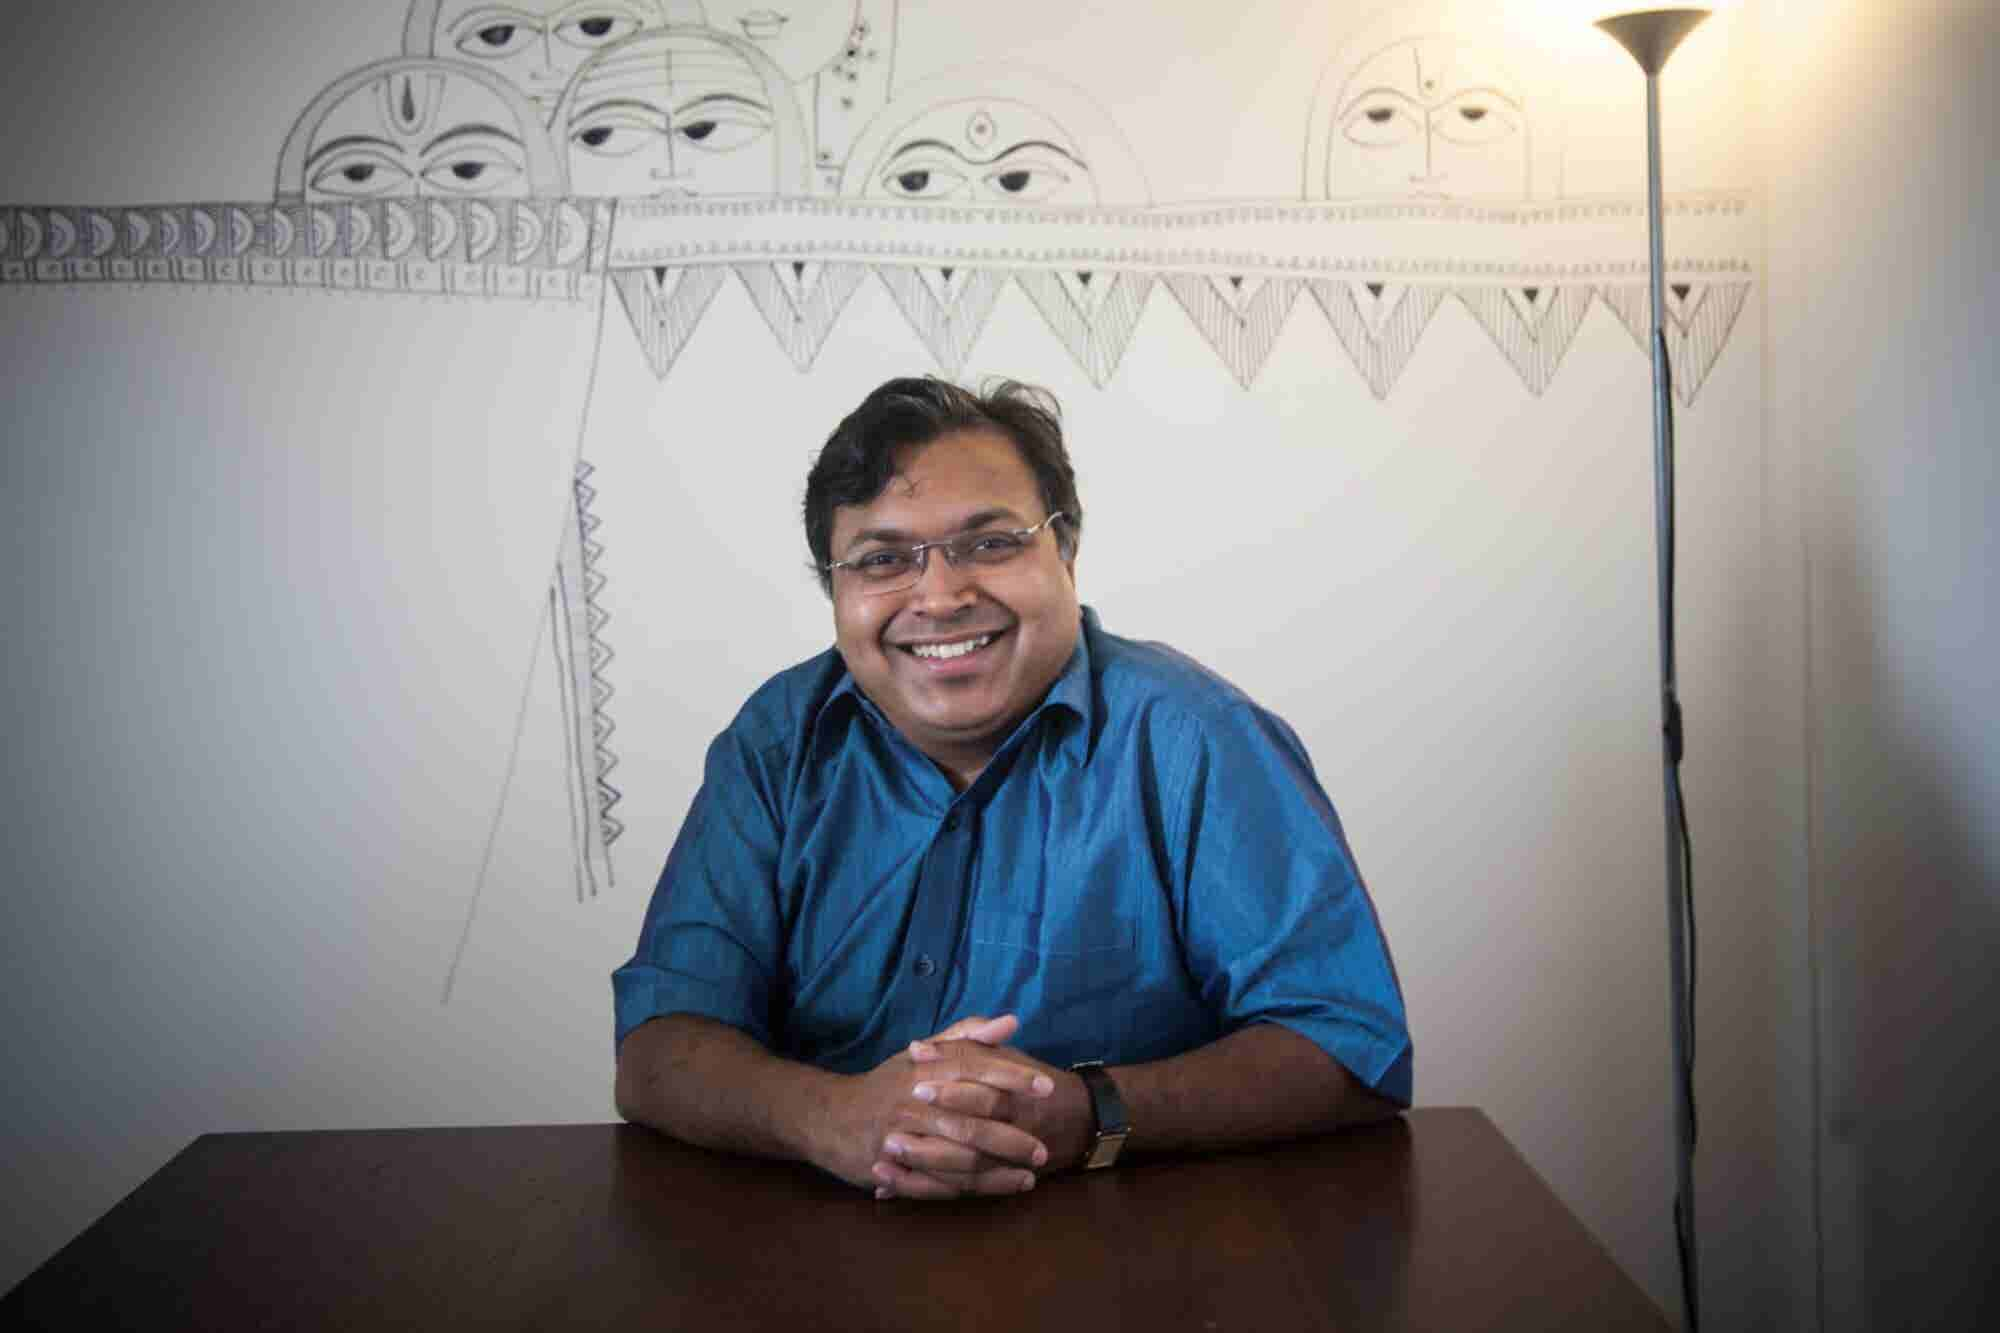 LGBTQ Series: Indian Author Devdutt Pattanaik on How Businesses Can Benefit from Inclusion